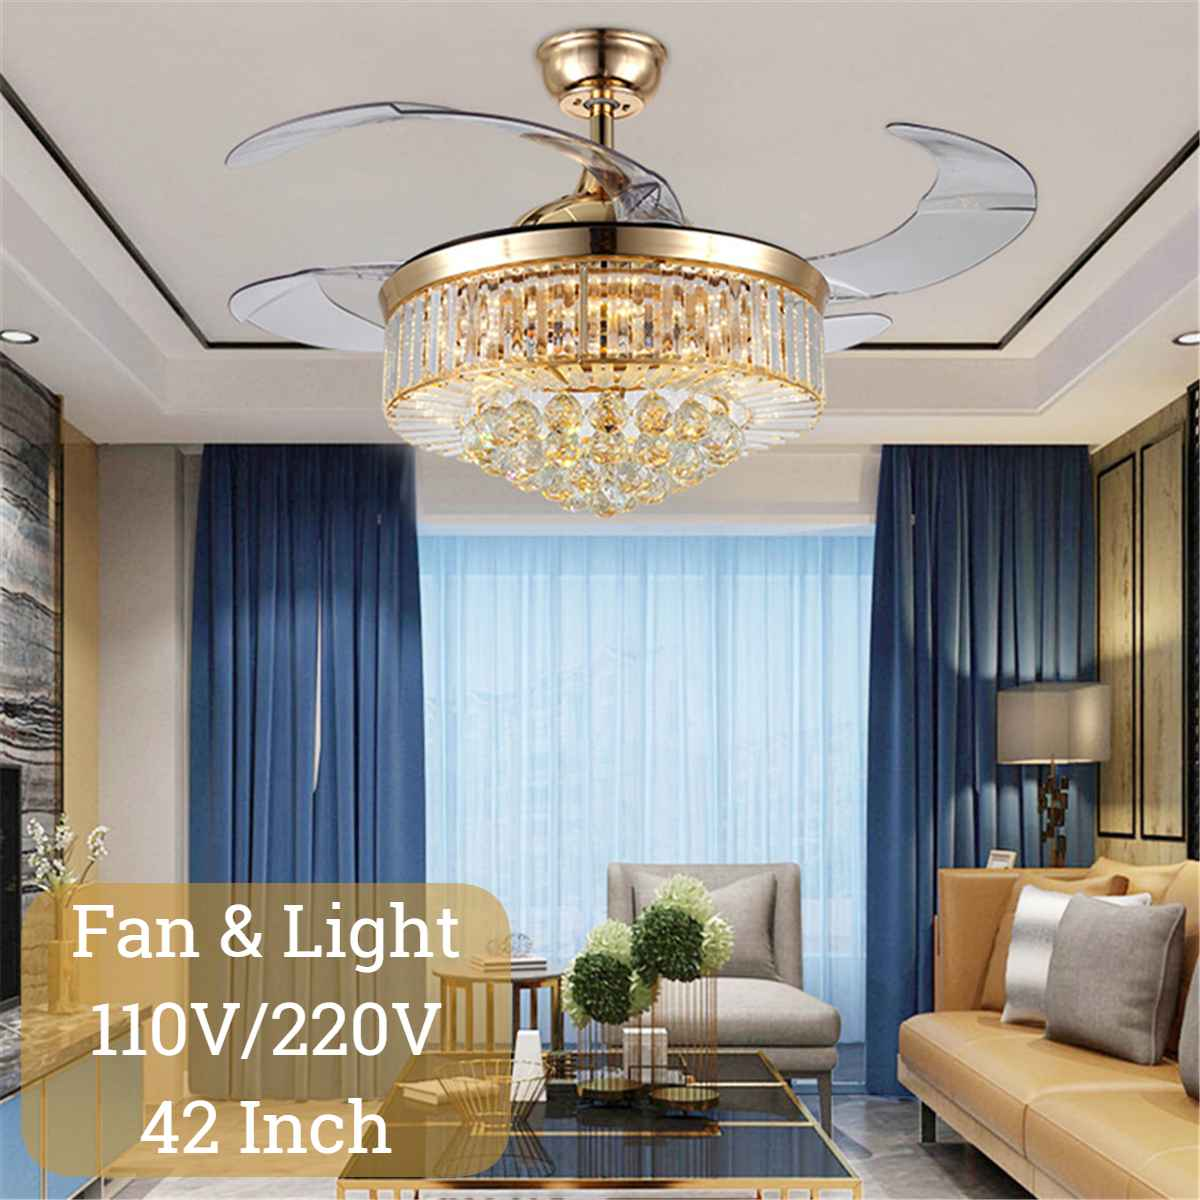 42 Inch Modern Crystal Ceiling Fan Lights With Remote Control Leaf Ceiling Fans Lamp For High Ceilings Livingroom Ceilingfan